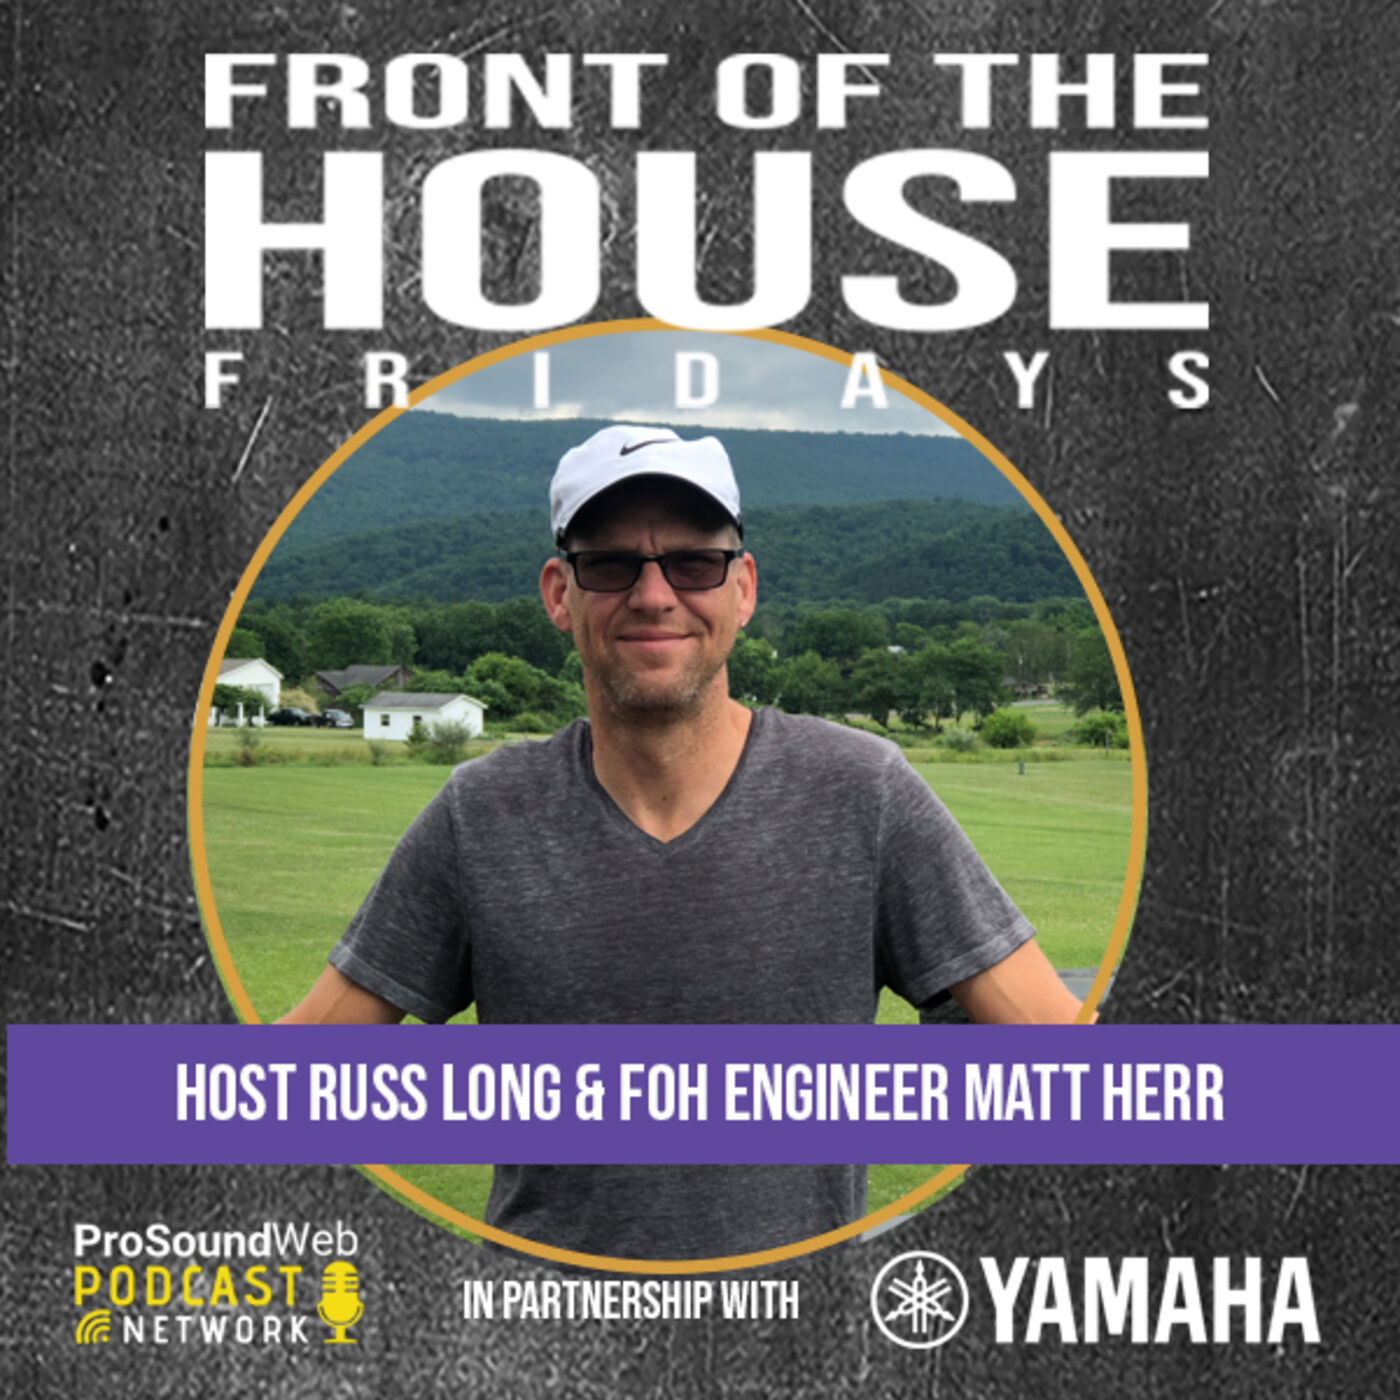 Episode 8: FOH Engineer Matt Herr